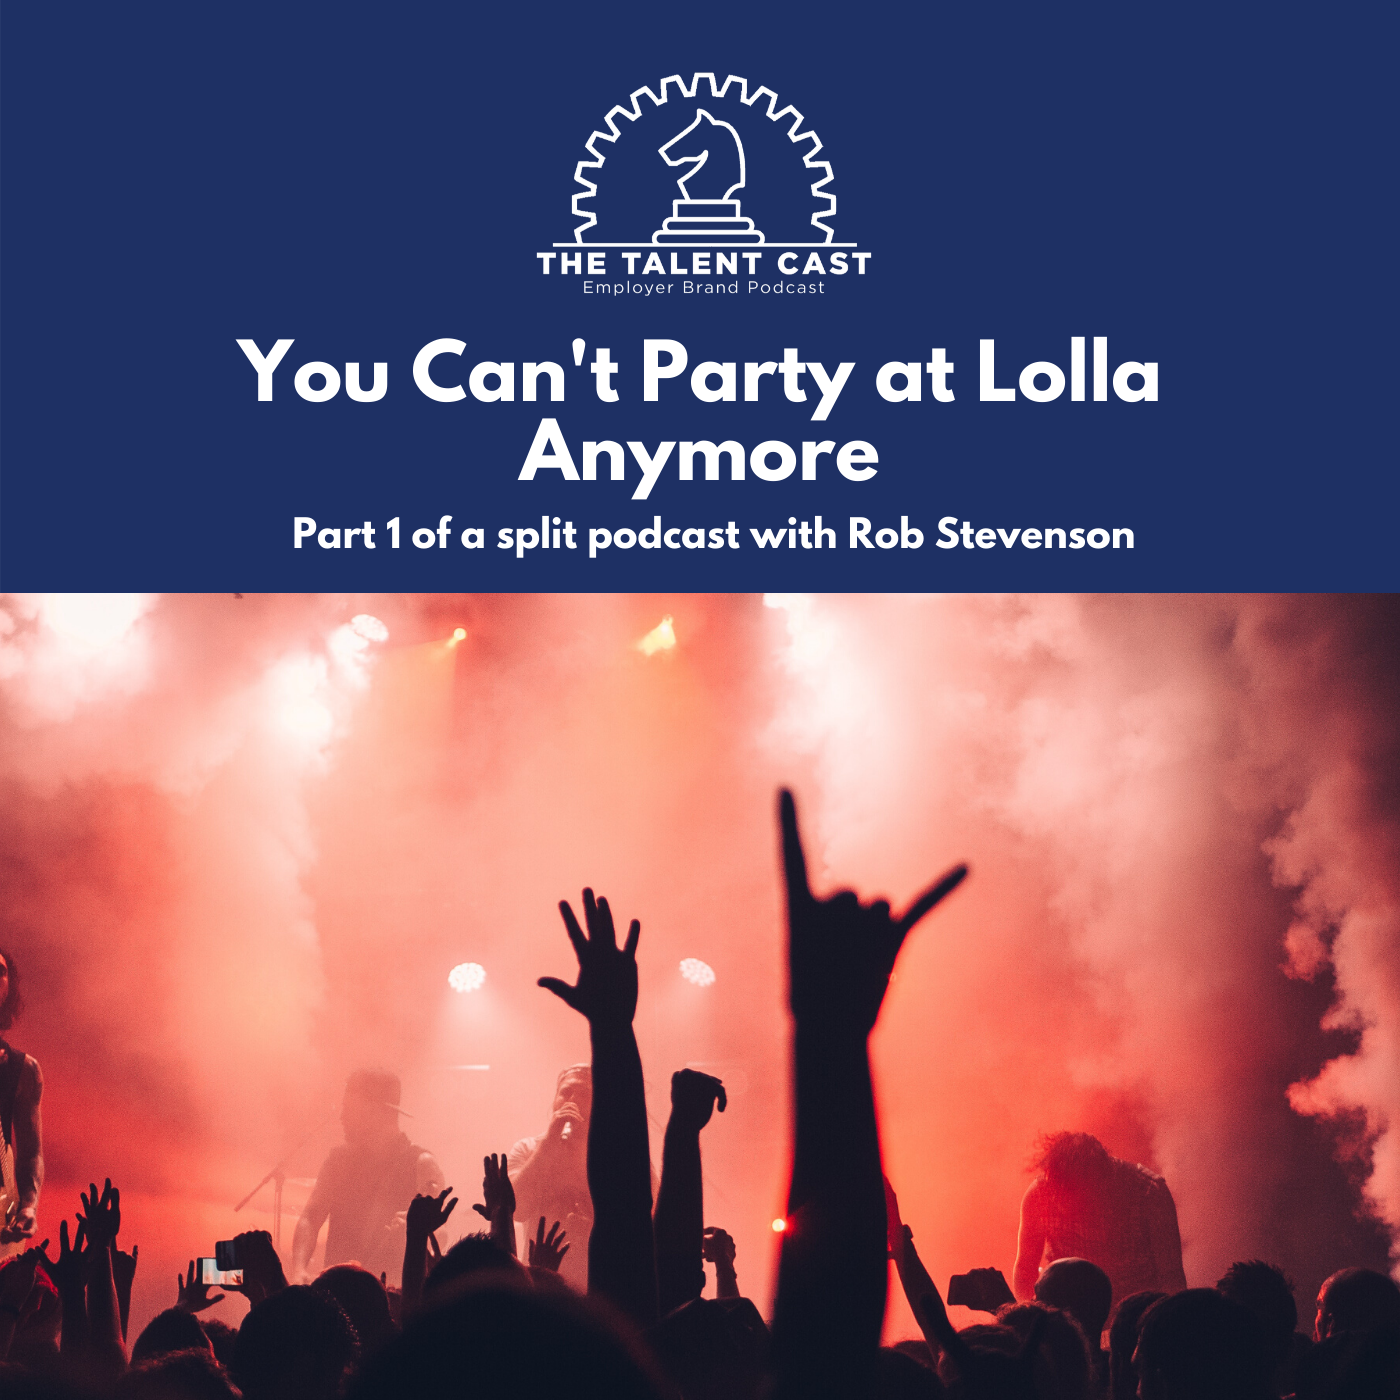 You can't party at lolla anymore with rob stevenson